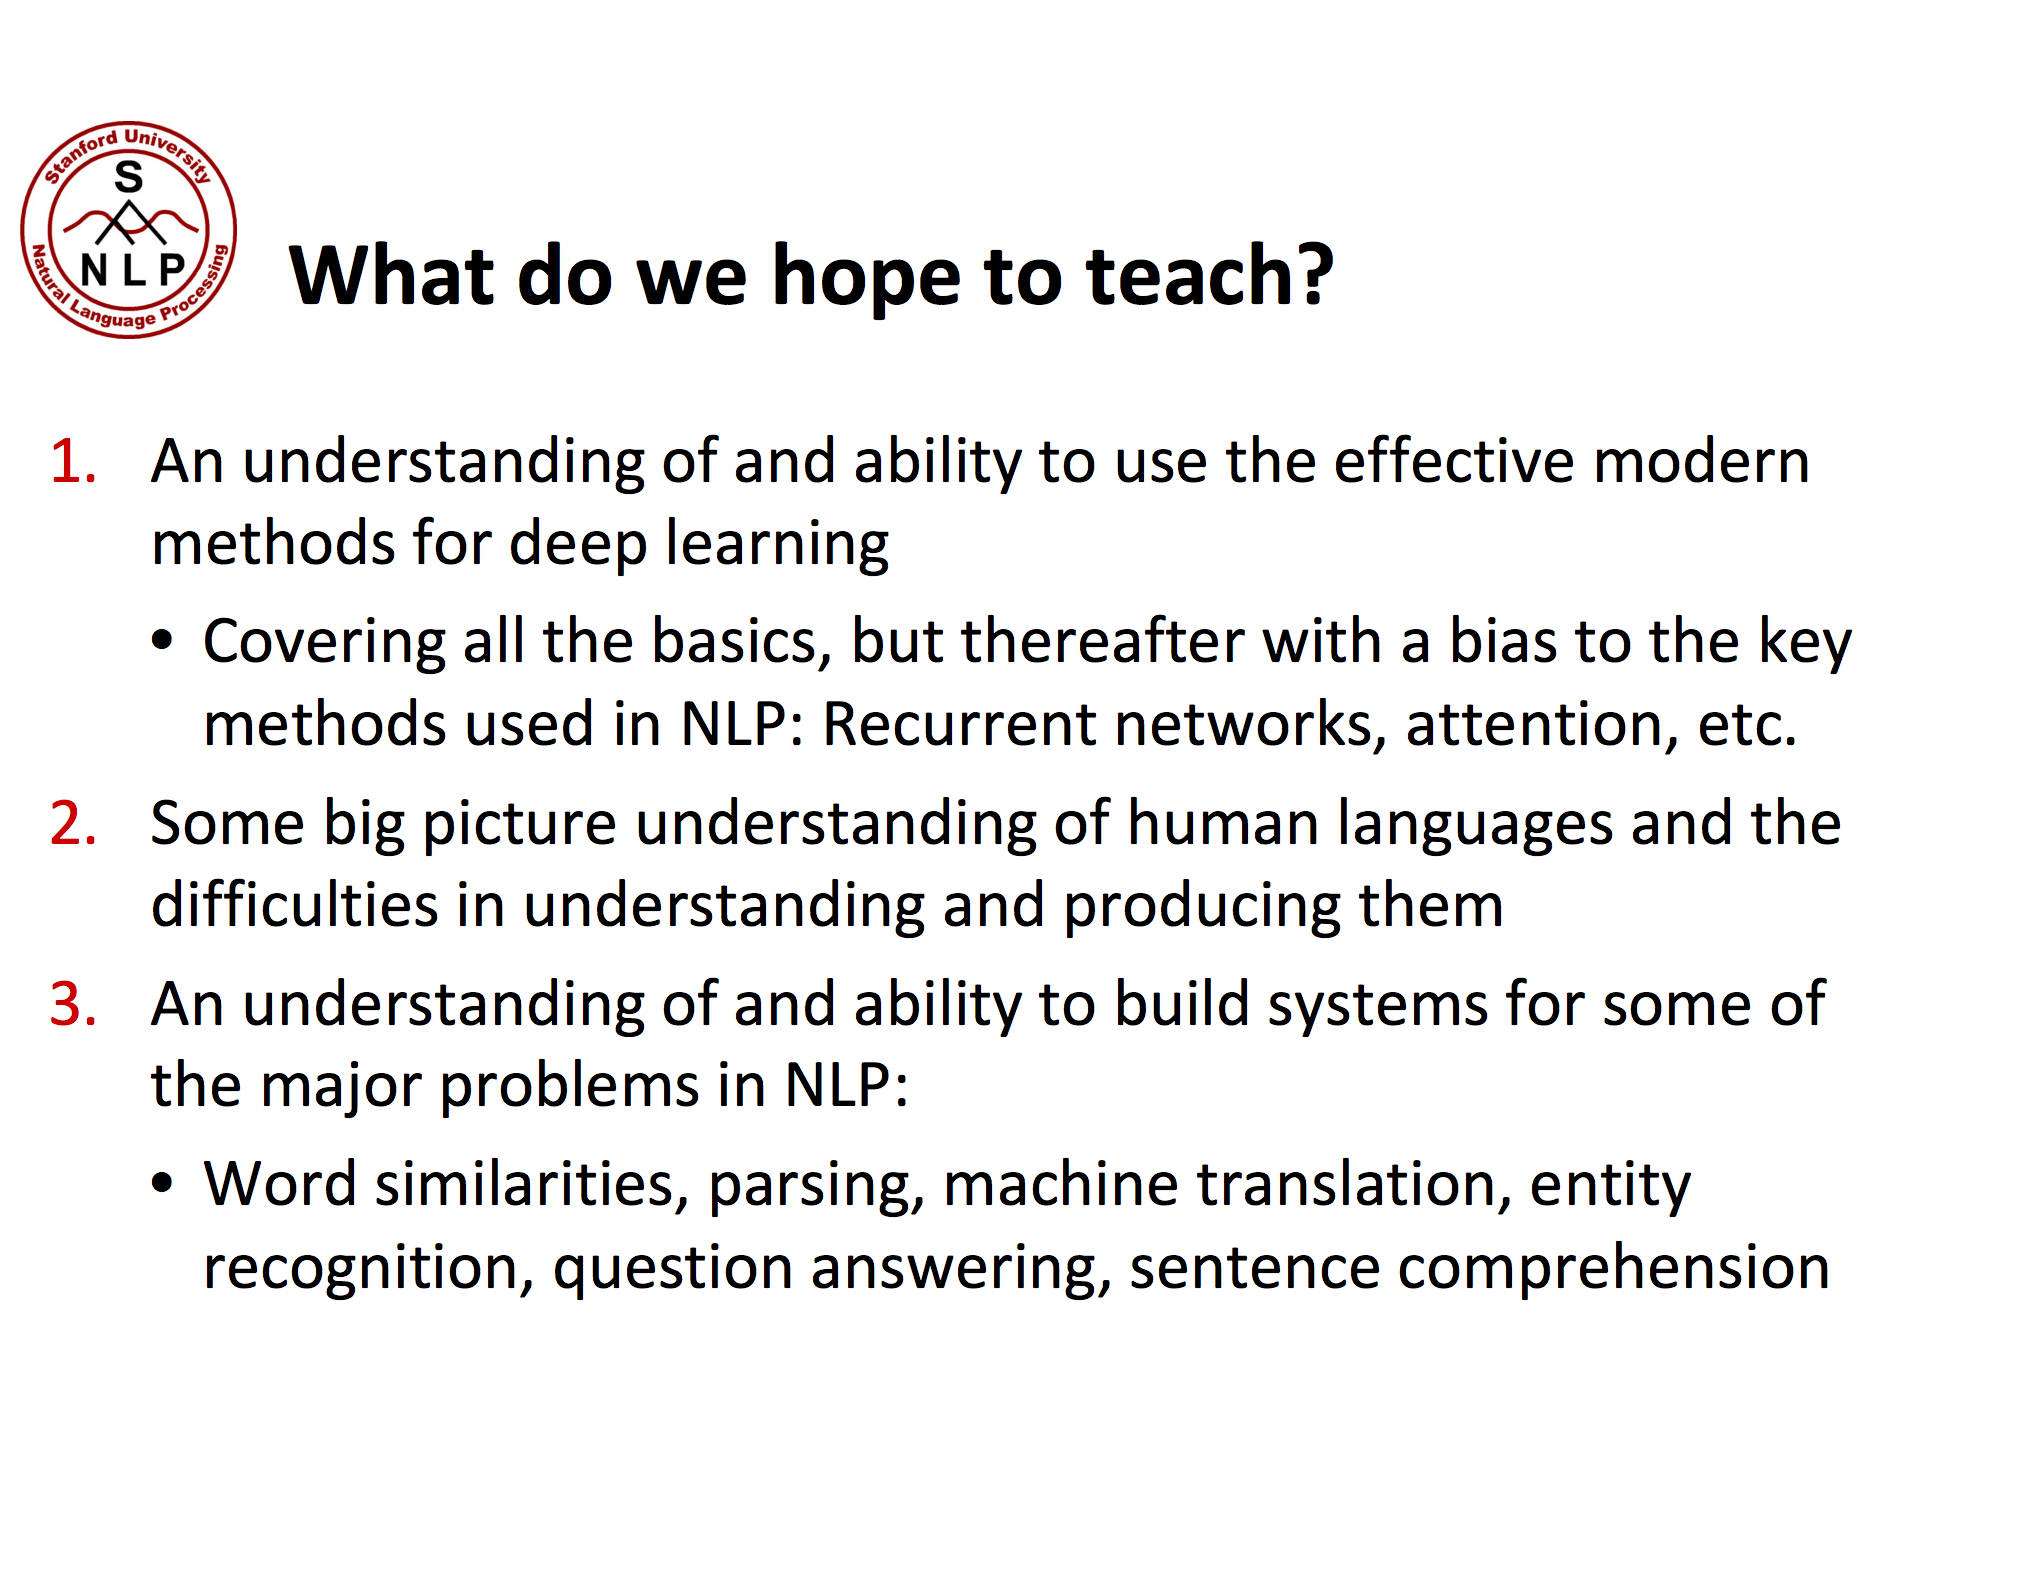 Goals of the Stanford Deep Learning for NLP Course